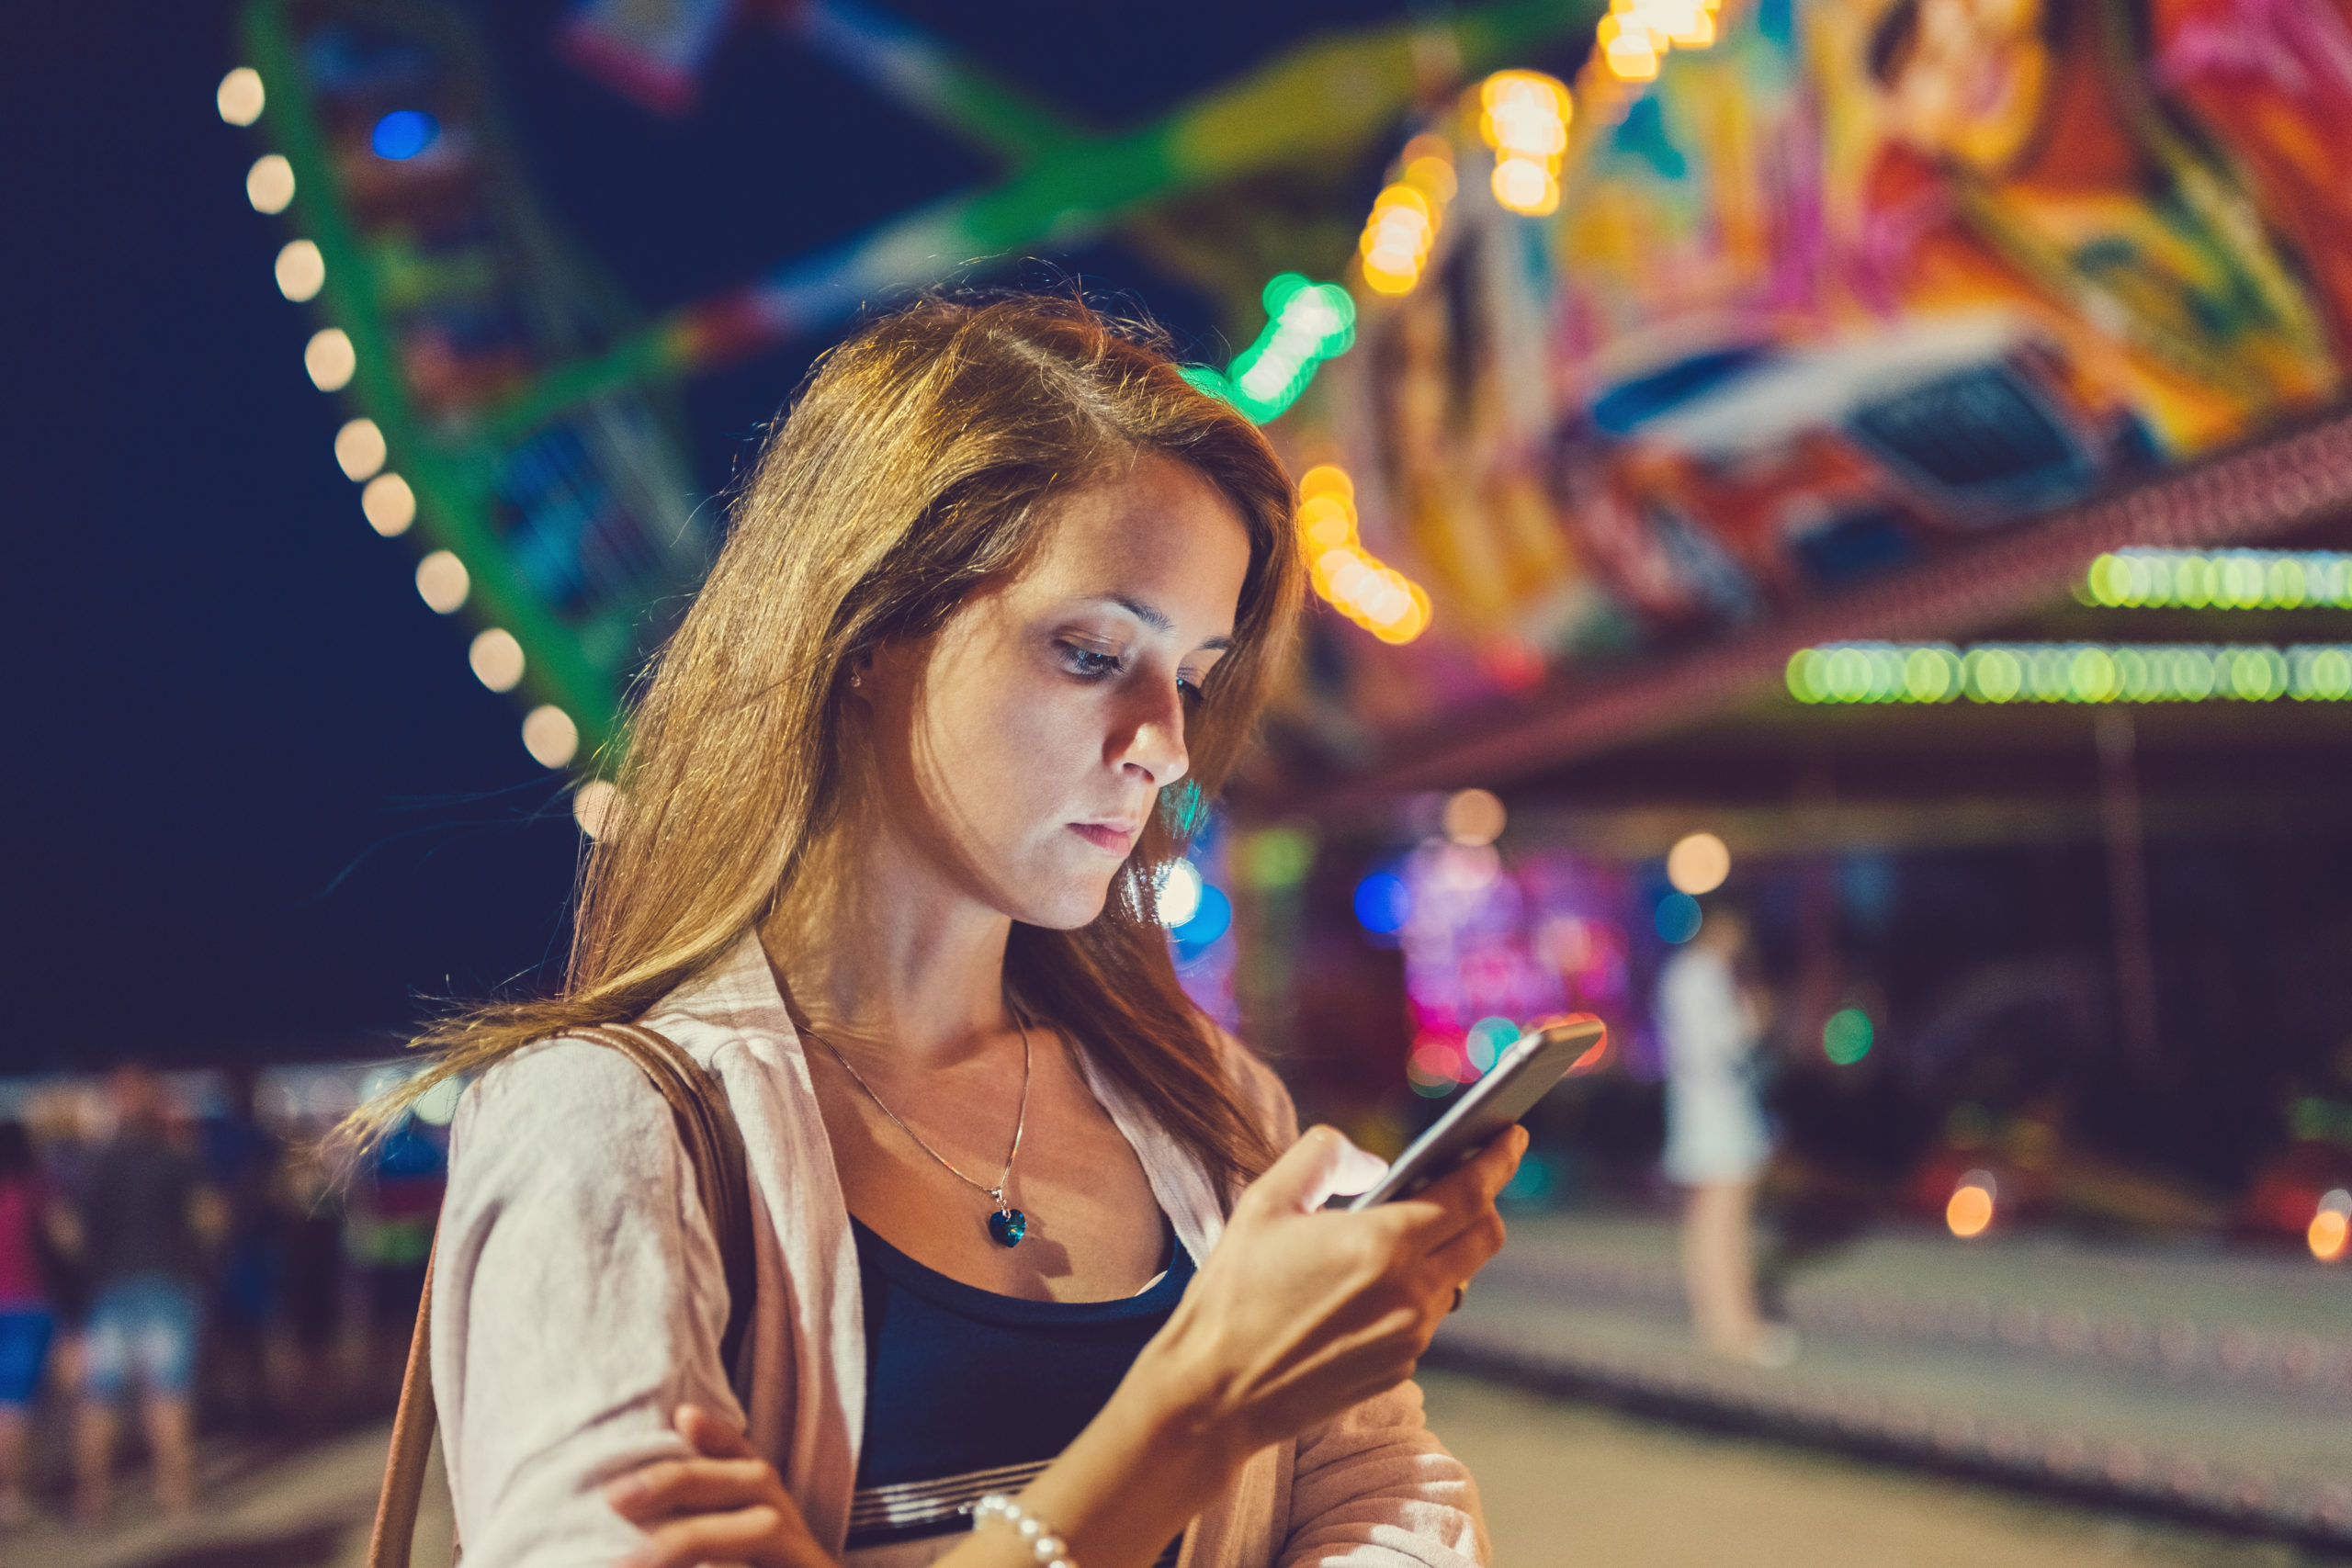 Confused girl at the amusement park using smartphone